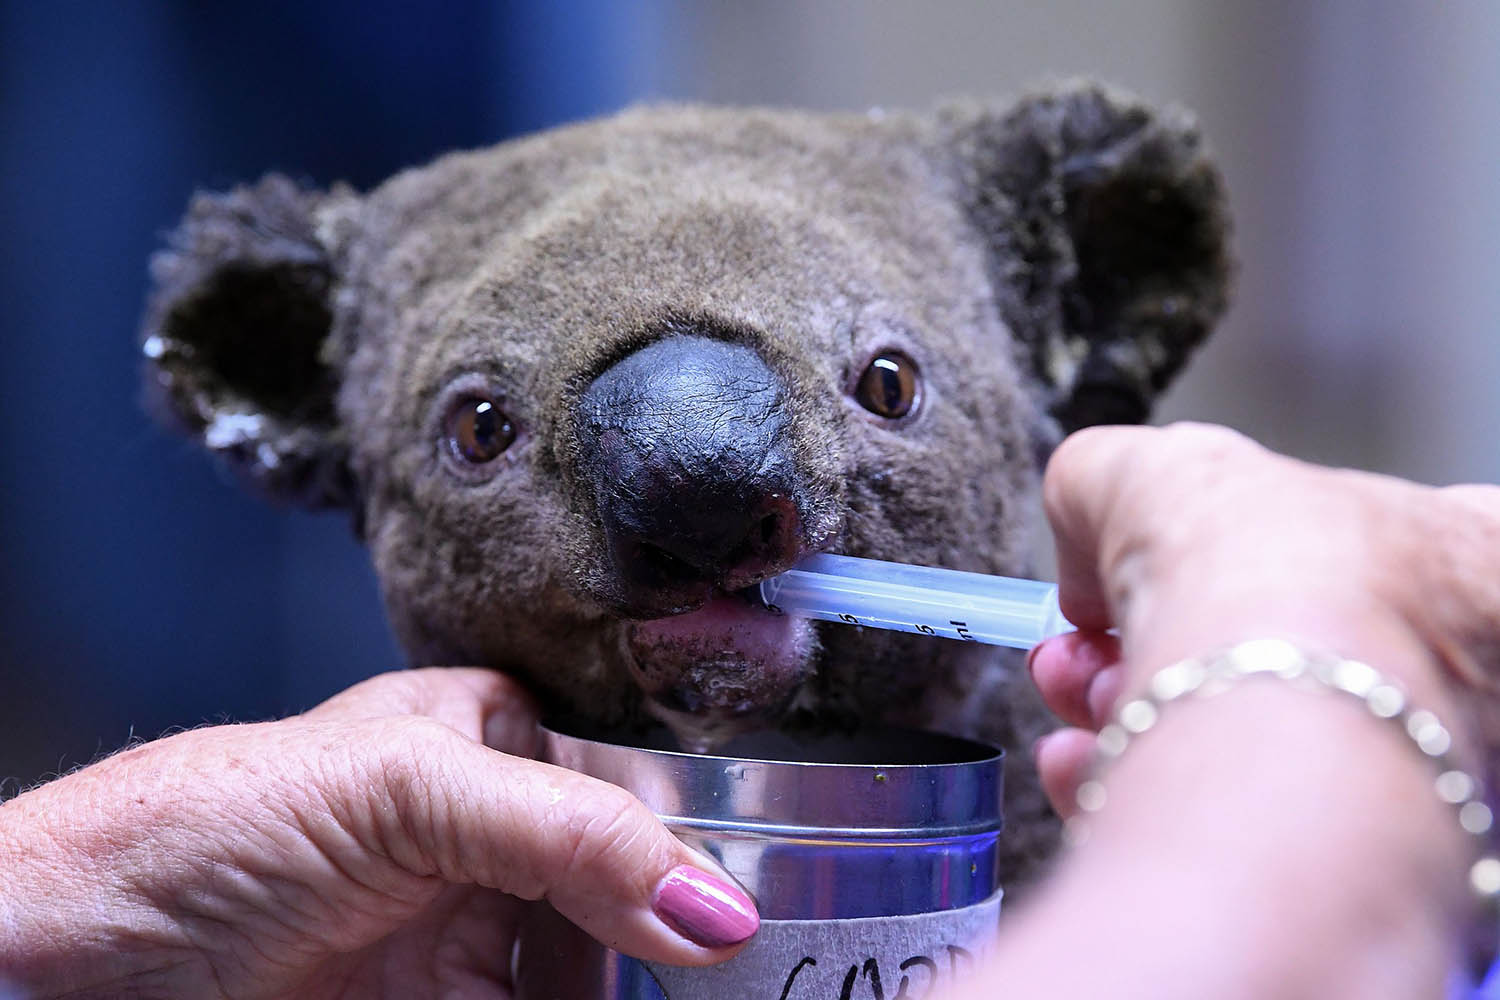 A dehydrated and injured koala receives treatment after its rescue from a bushfire at the Port Macquarie Koala Hospital on Nov. 2, 2019. SAEED KHAN/AFP via Getty Images)